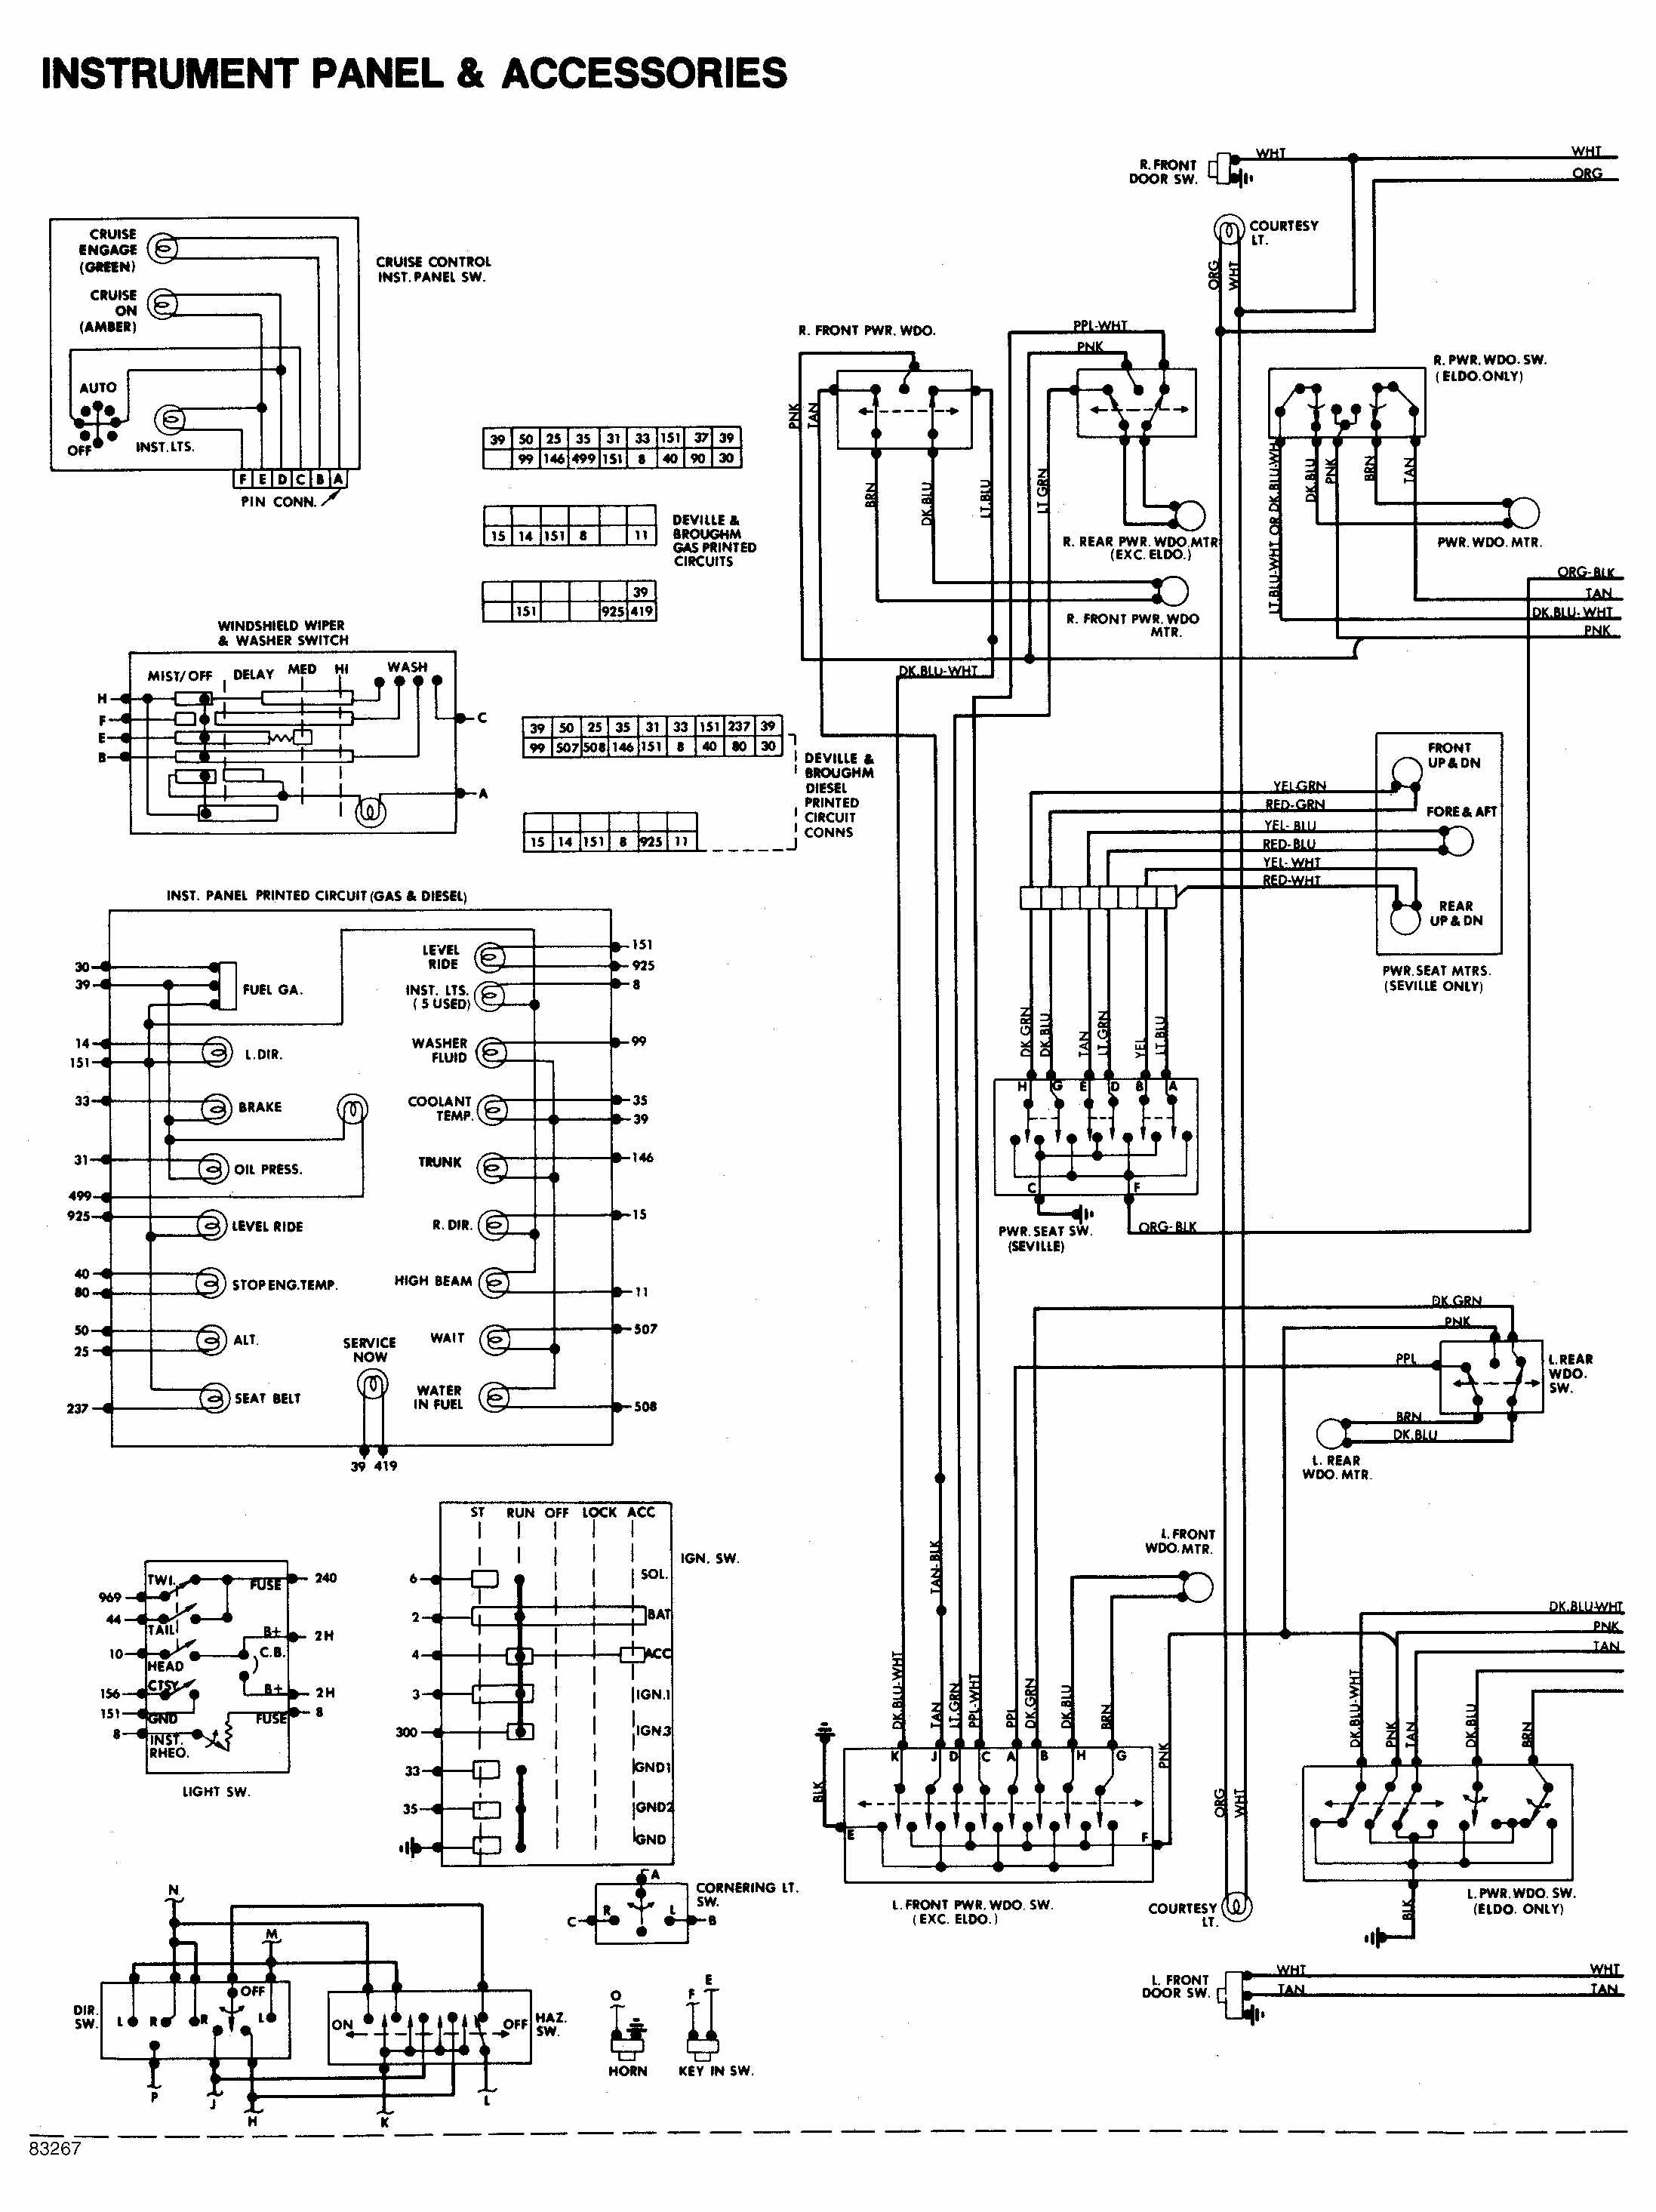 instrument panel and accessories wiring diagram of 1984 cadillac deville 2001 cadillac eldorado wiring harness 2001 wirning diagrams 1998 chevy tracker wiring diagram at readyjetset.co